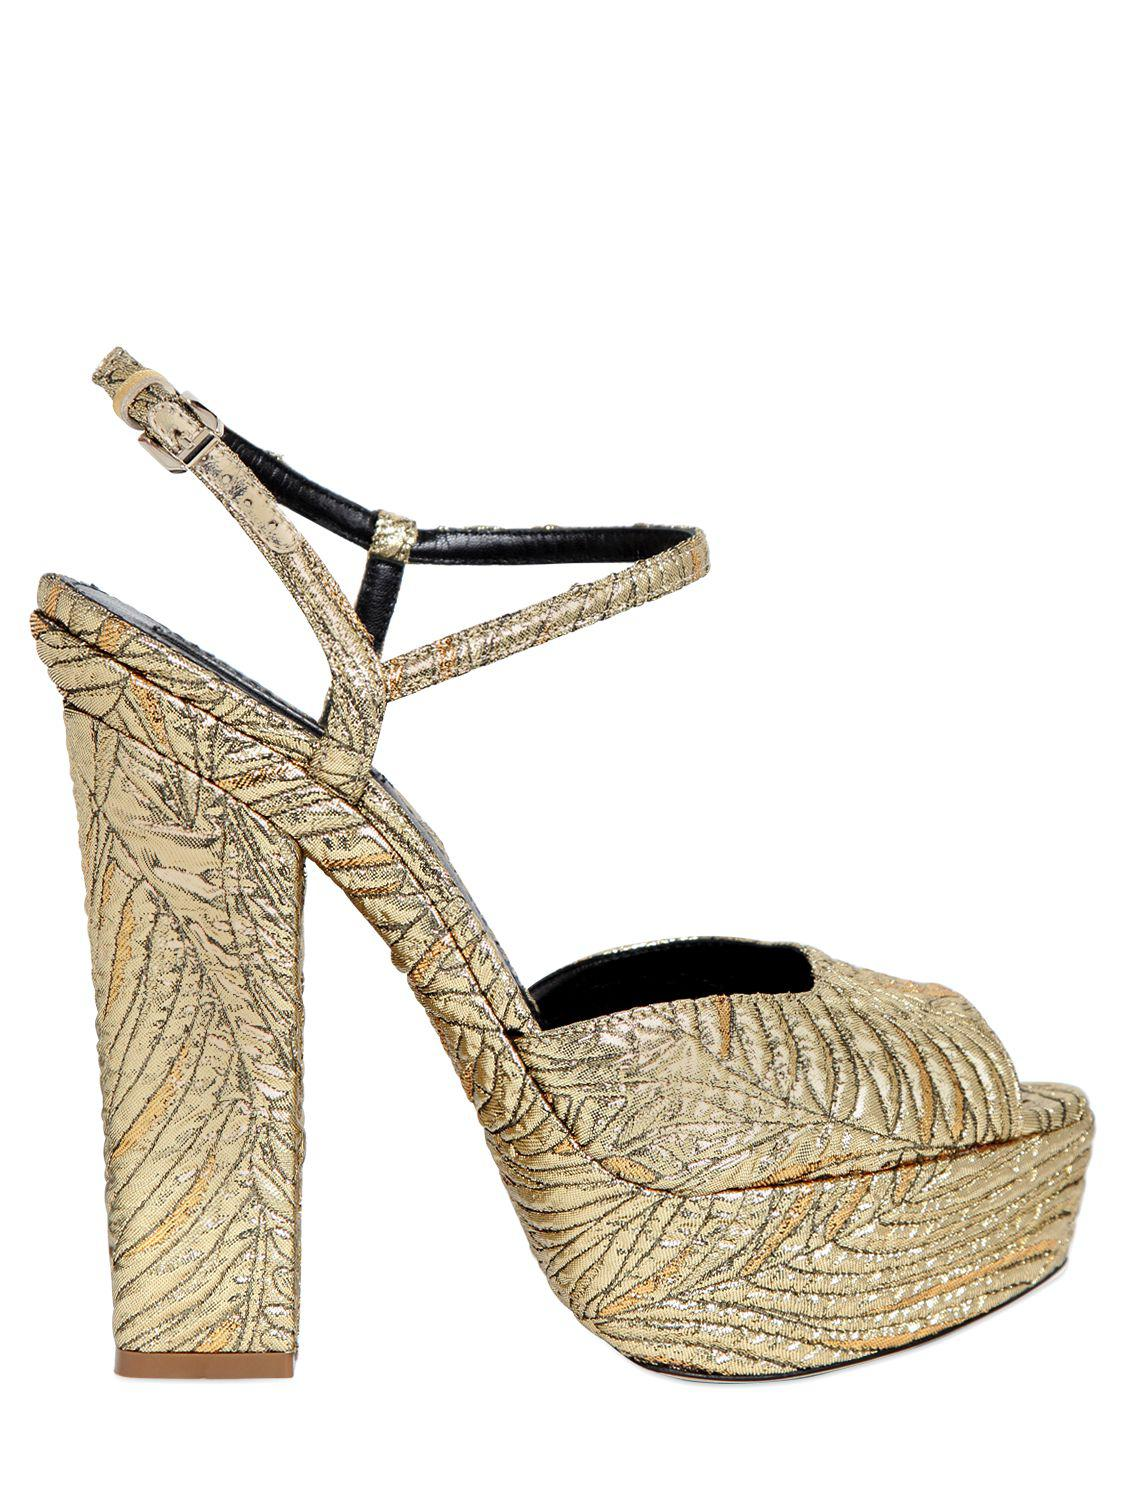 best place to buy shopping online clearance Dsquared² Metallic Platform Sandals cost sale online outlet cheap prices how much cheap price wRy8rsibzy